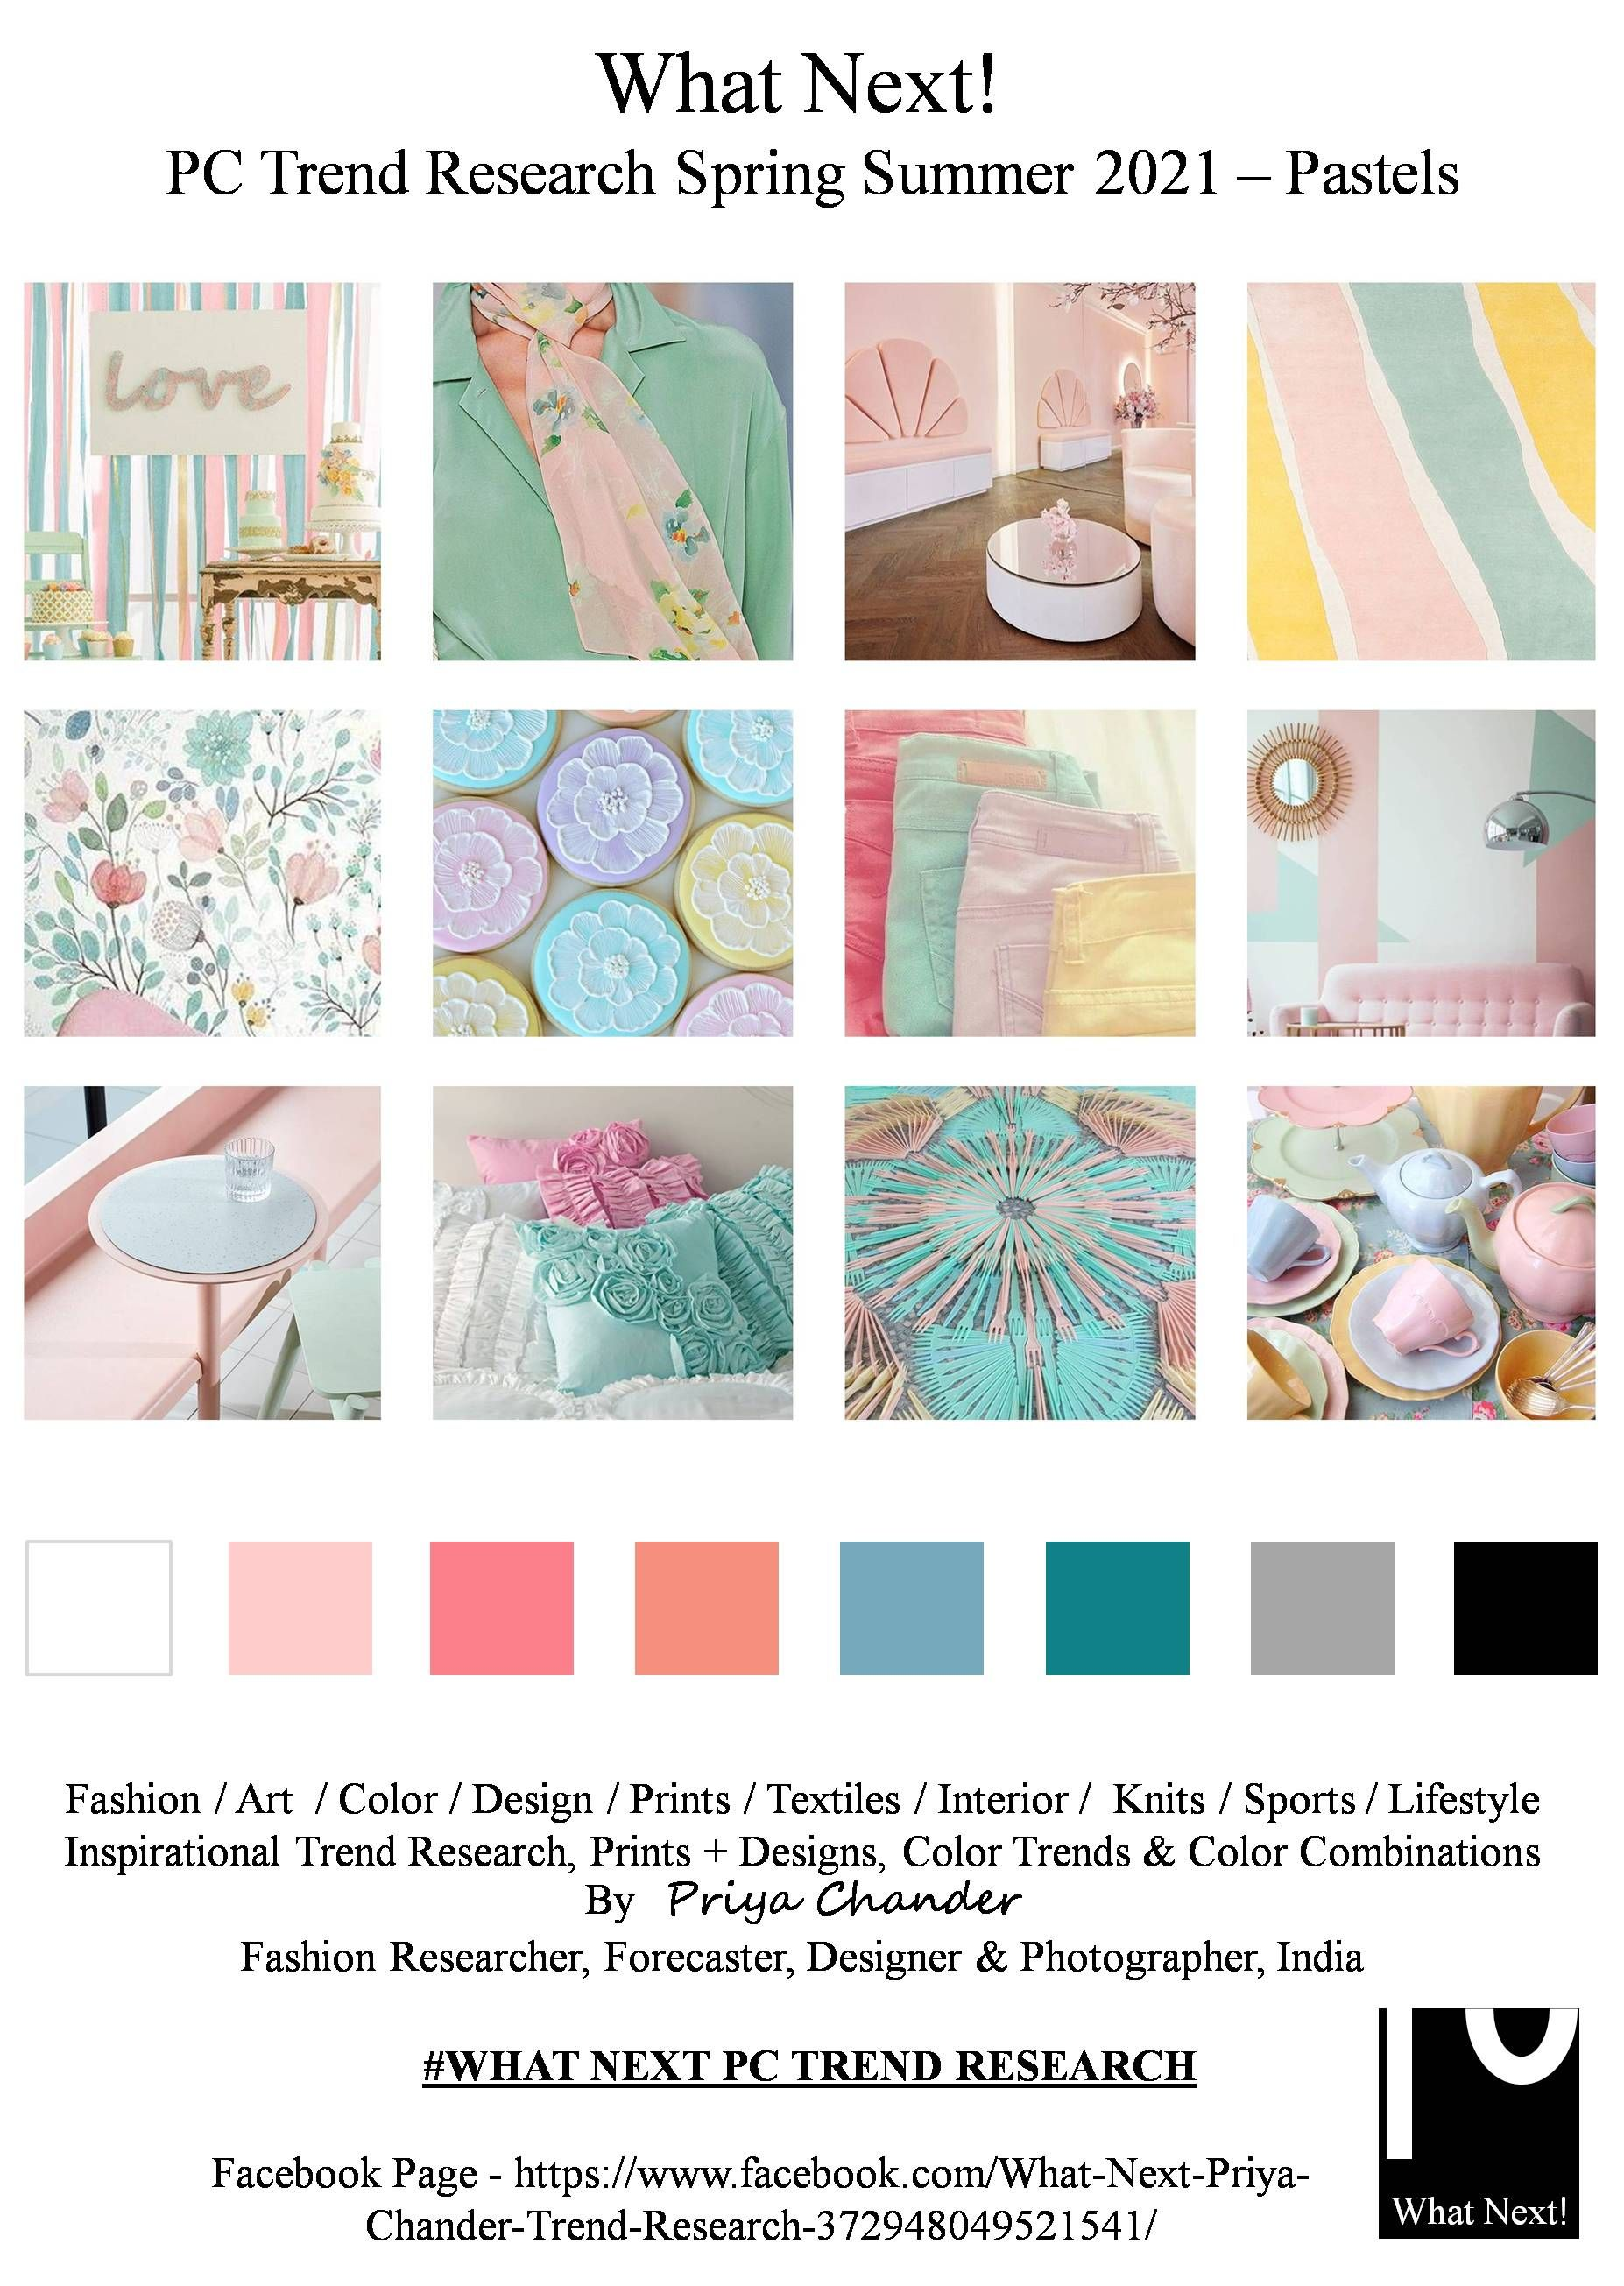 pastels pastelcolors pastel ss2021 on interior design color trends 2021 id=51910